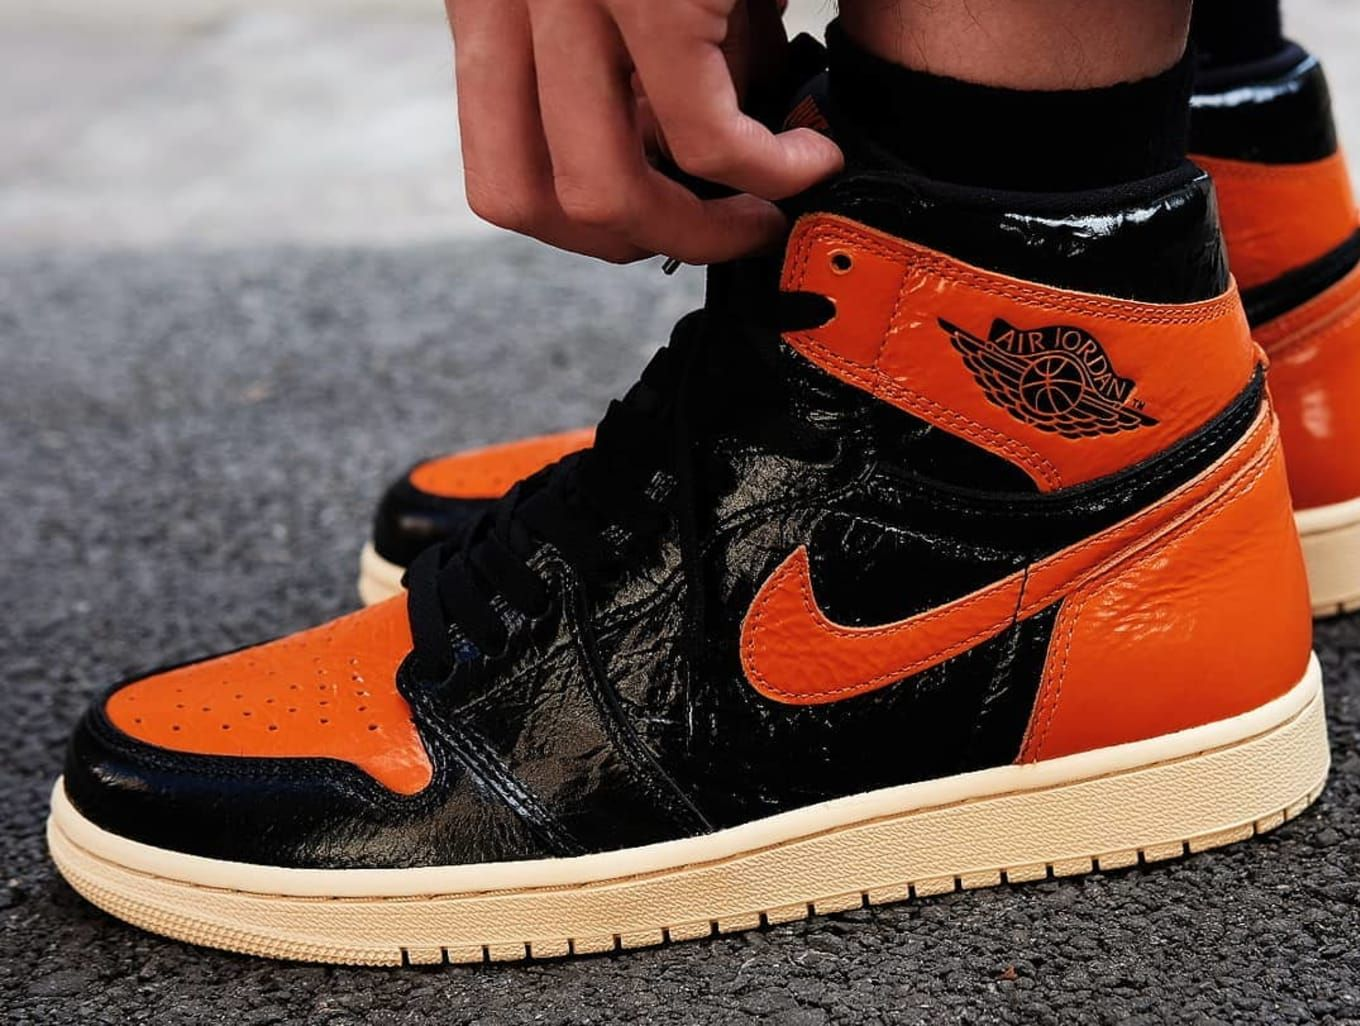 Air Jordan 1 Shattered Backboard 3 0 Black Pale Vanilla Starfish